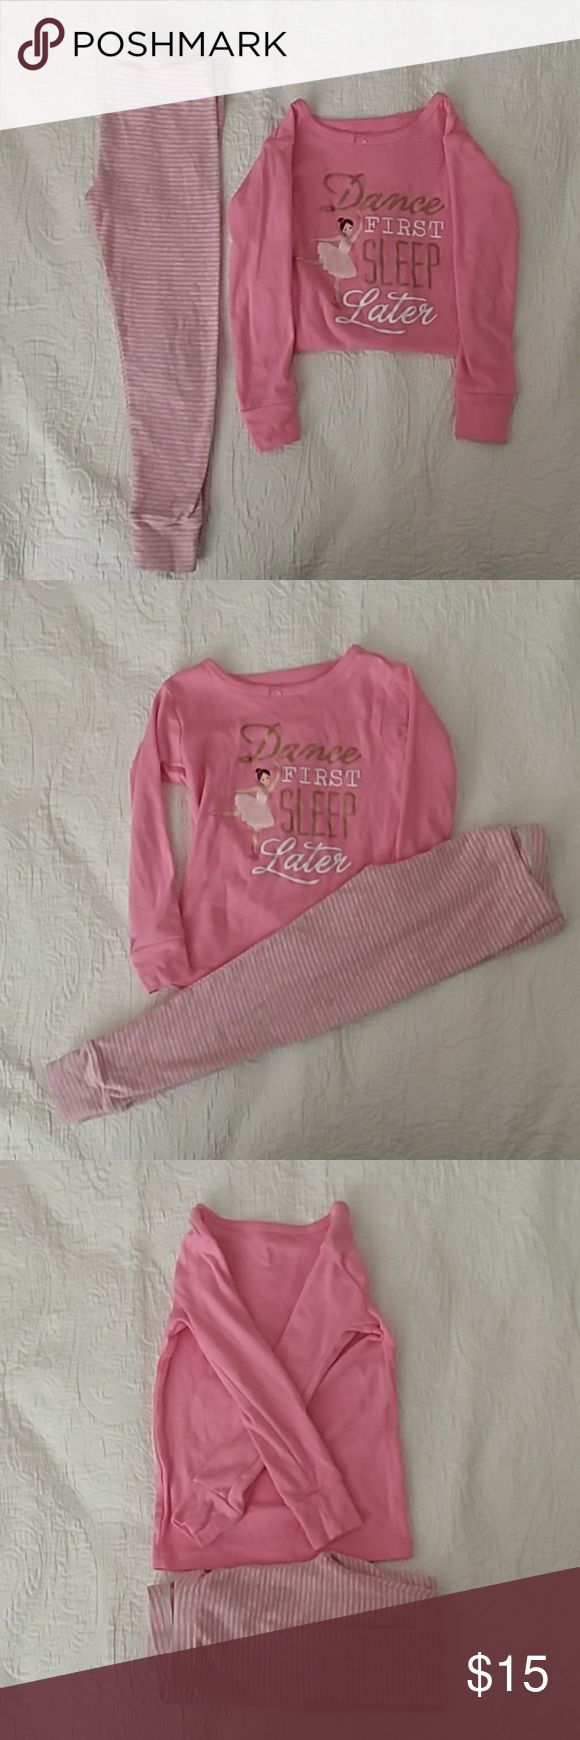 """3T PJs Dance First Sleep Later Super cute and comfy PJs! 3T Carter's bubblegum pink long sleeve top that says """"Dance First Sleep Later."""" Matching pink and gray striped pants.  100% cotton, worn once or twice.   Offers and questions are encouraged! Carter's Pajamas Pajama Sets"""